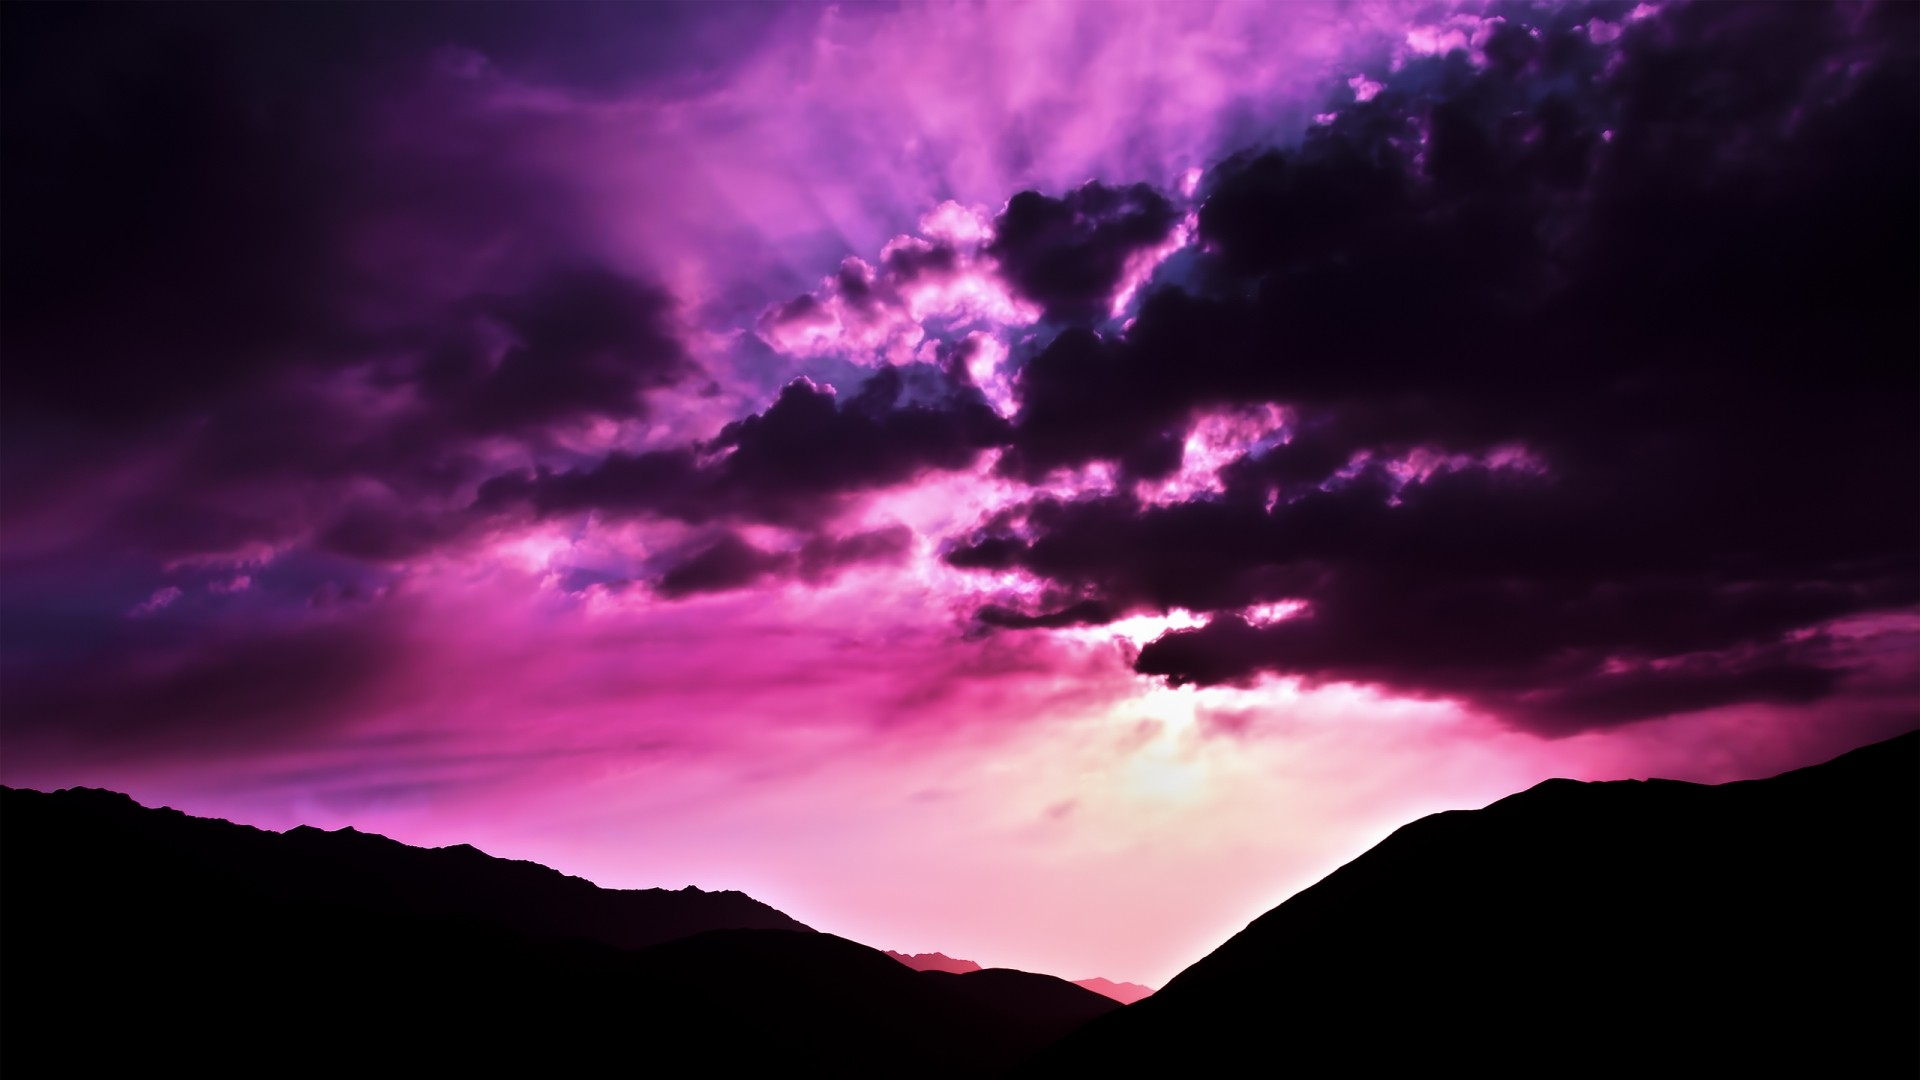 Nature Purple Wallpaper 1920x1080 Nature Purple Morning Scenario 1920x1080